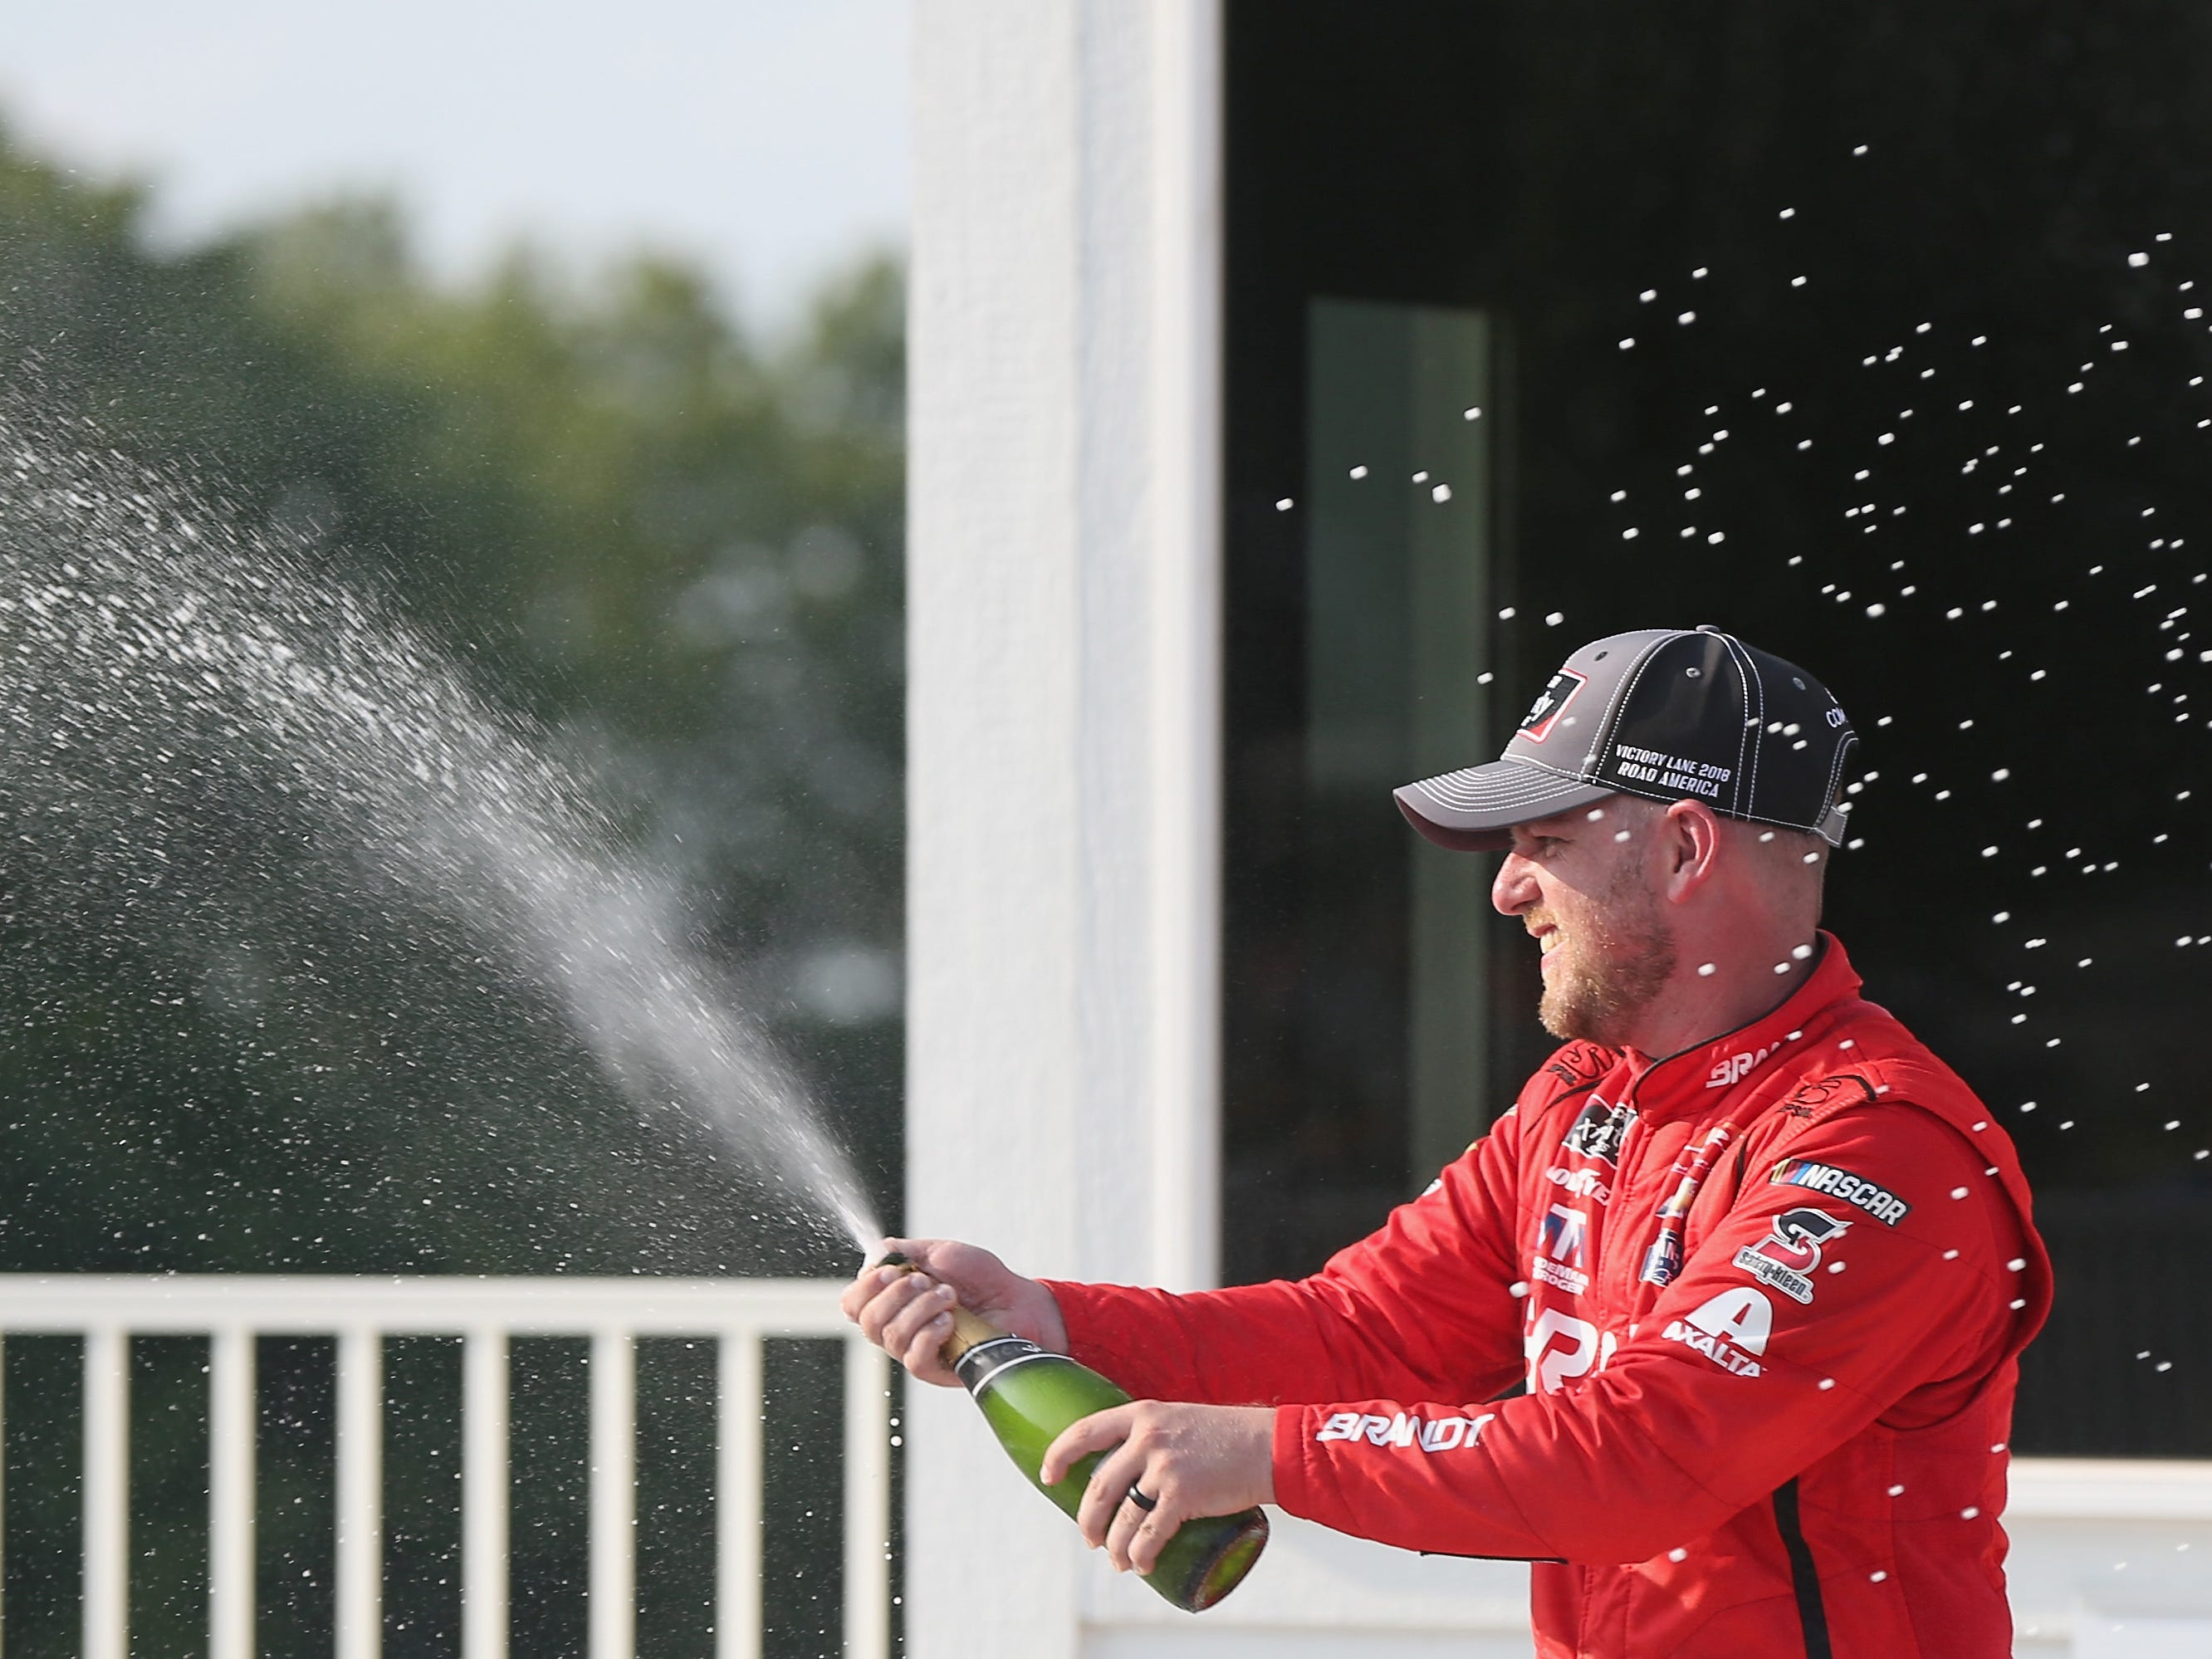 Justin Allgaier celebrates in victory lane after winning the NASCAR Xfinity Series Johnsonville 180 at Road America on Saturday by spraying a little champagne.